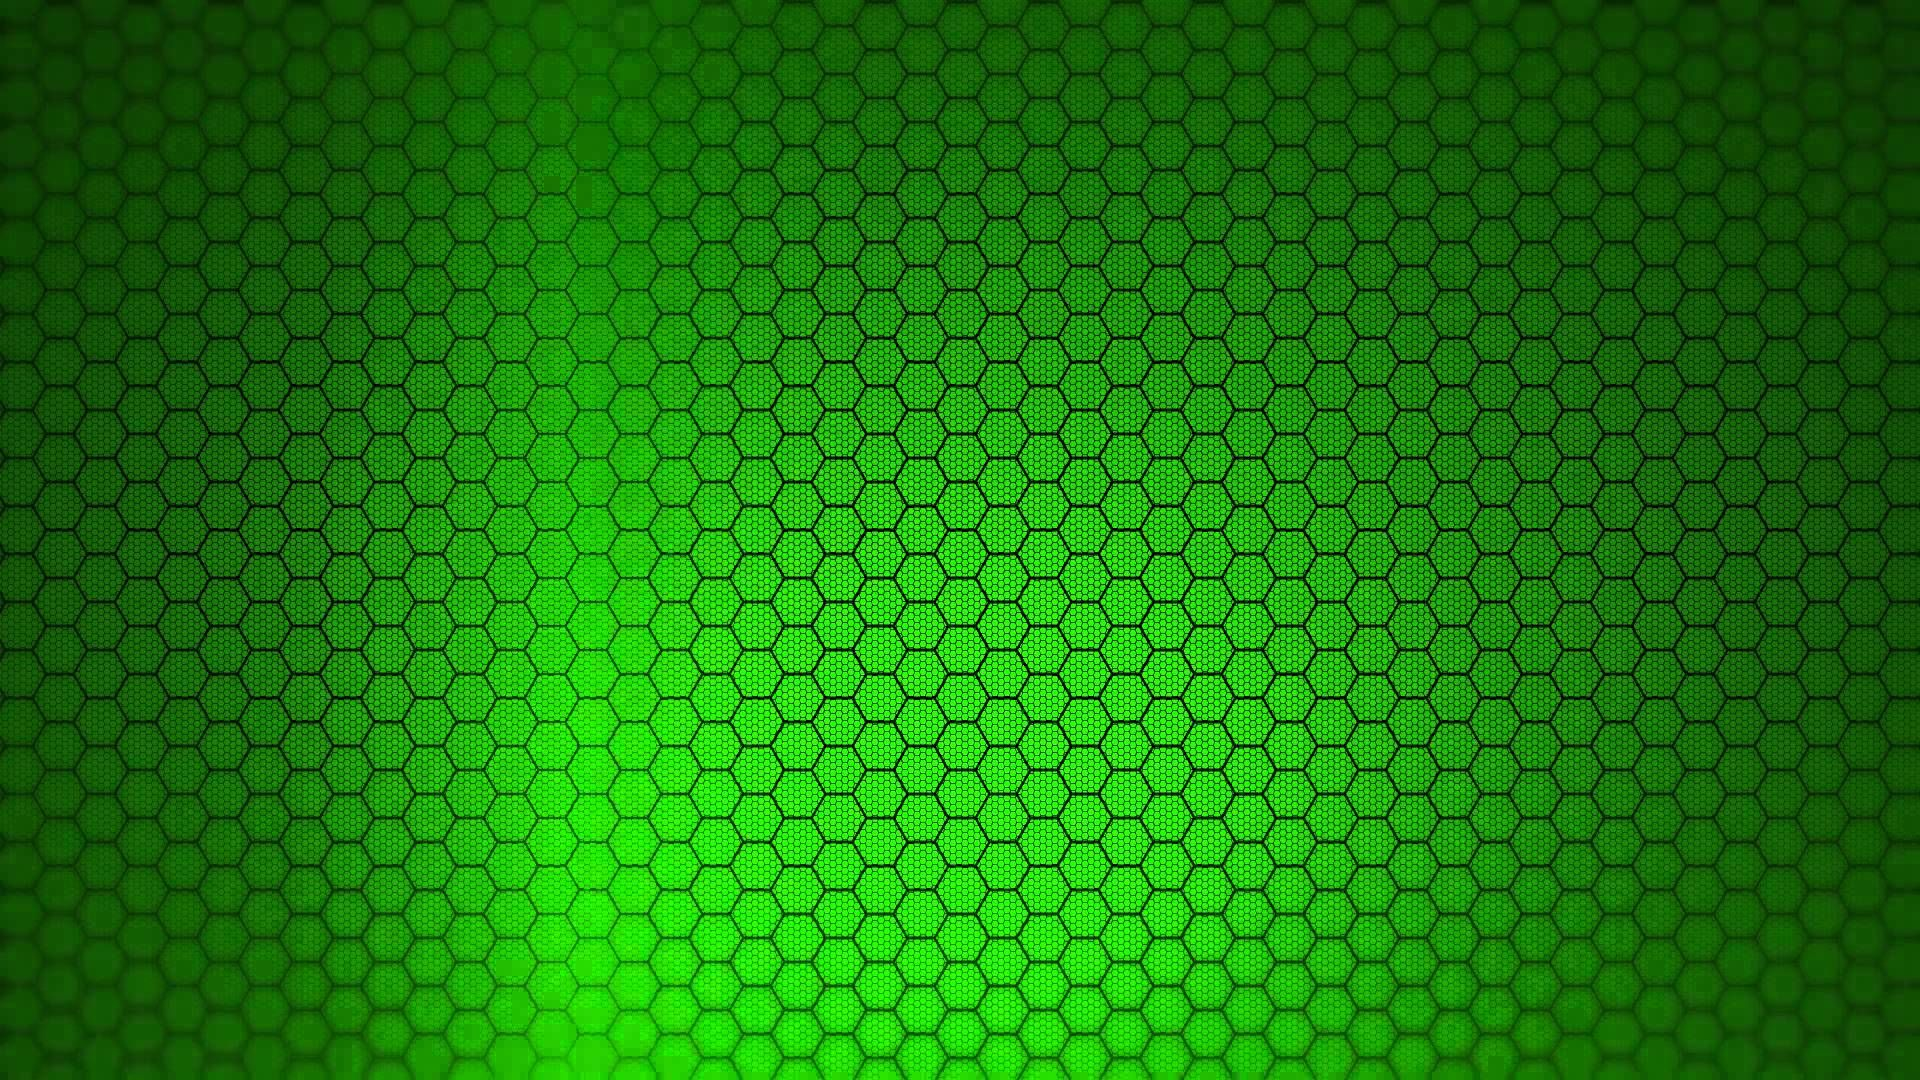 Hexagon Background Green Screen Animation Youtube Green Wallpaper Green Backgrounds Green Screen Backgrounds